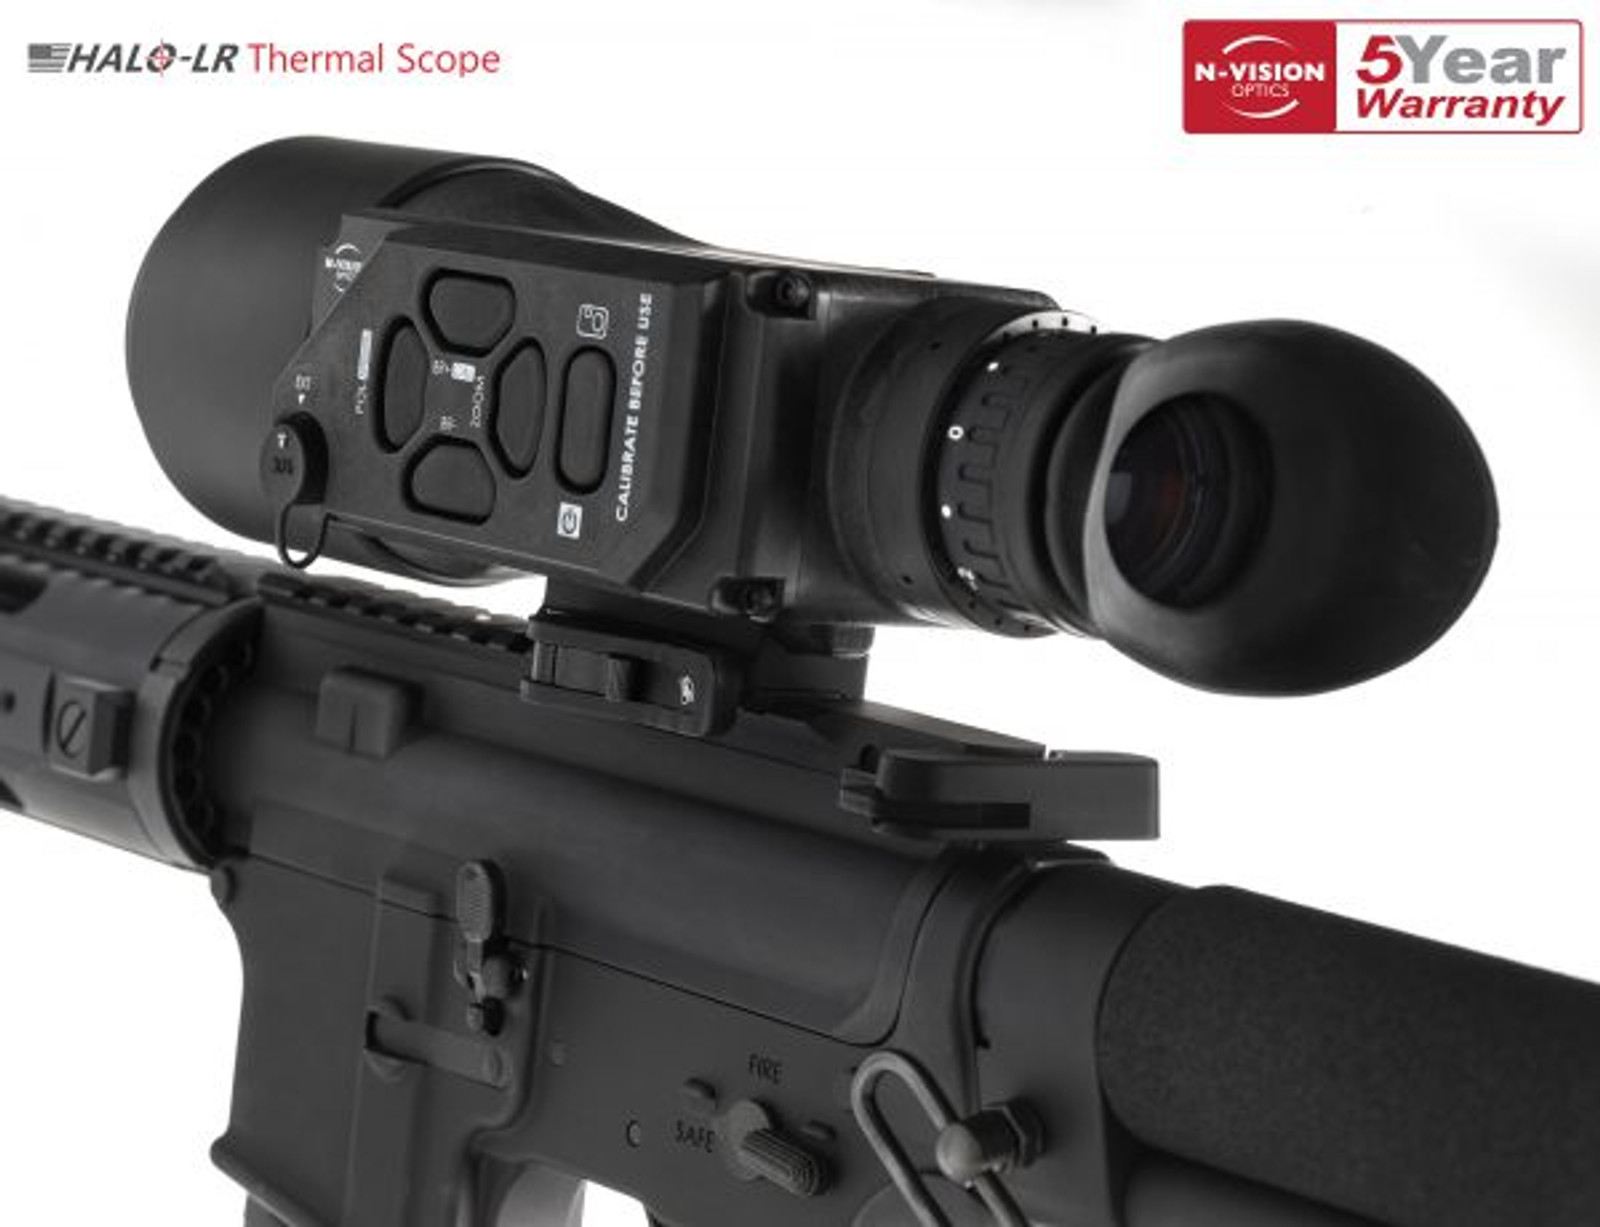 HALO-LR Thermal Weapon Sight